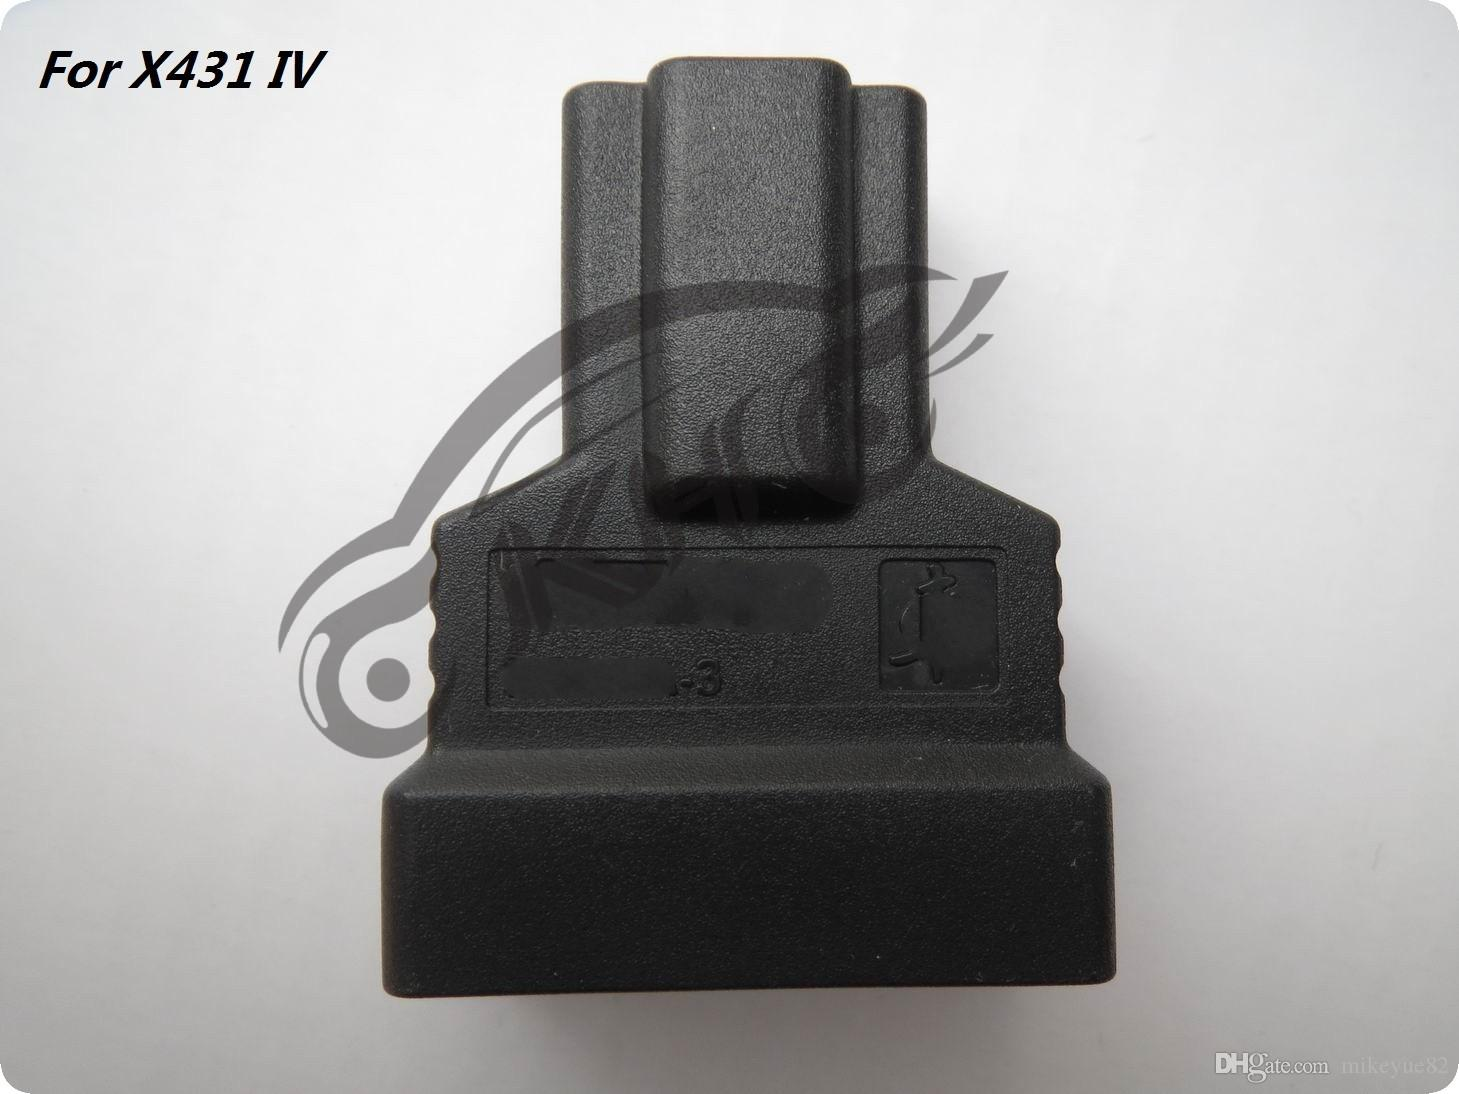 100% Original for LAUNCH X431IV for HONDA-3 Adaptor Connector for X431 4 Fourth Generation Adapter OBD II Connector